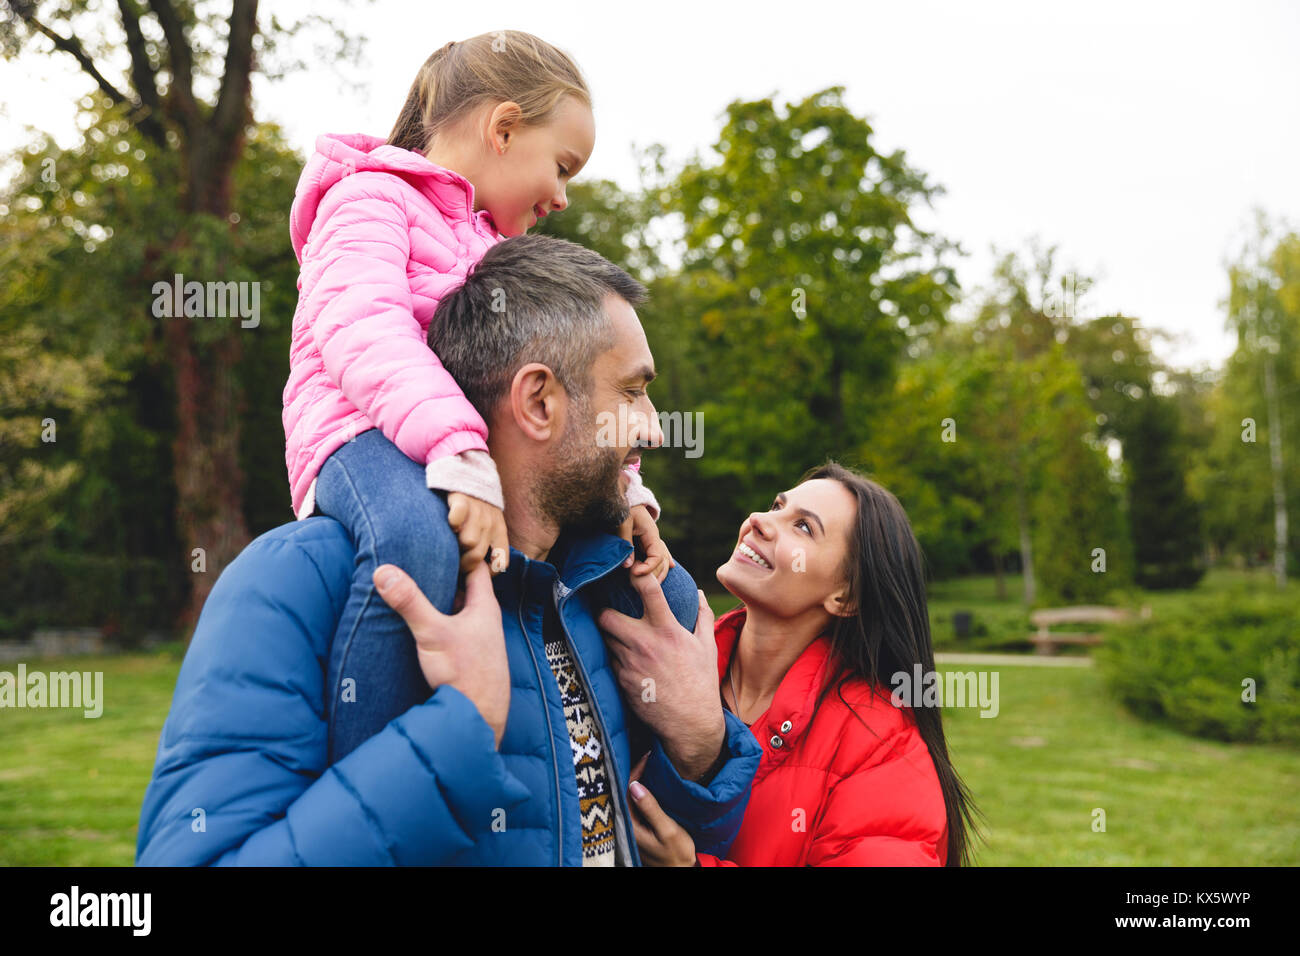 Beautiful young family spending time together outdoors, dad giving his daughter a piggyback ride - Stock Image